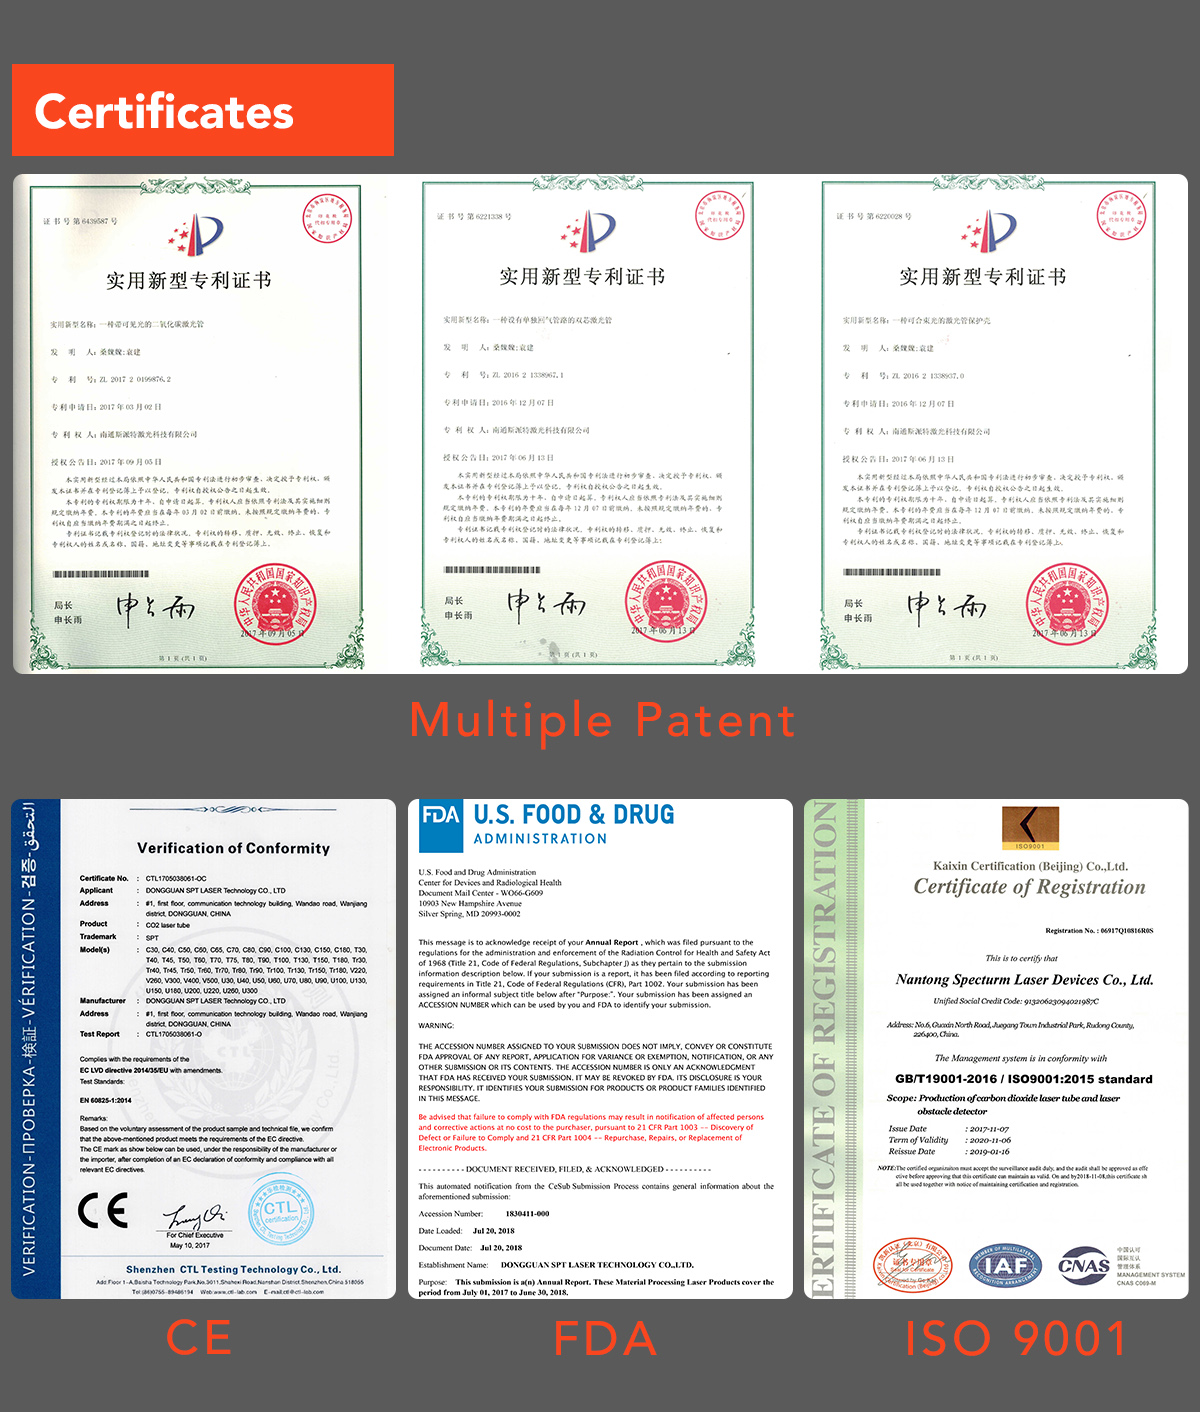 certificates of spt laser